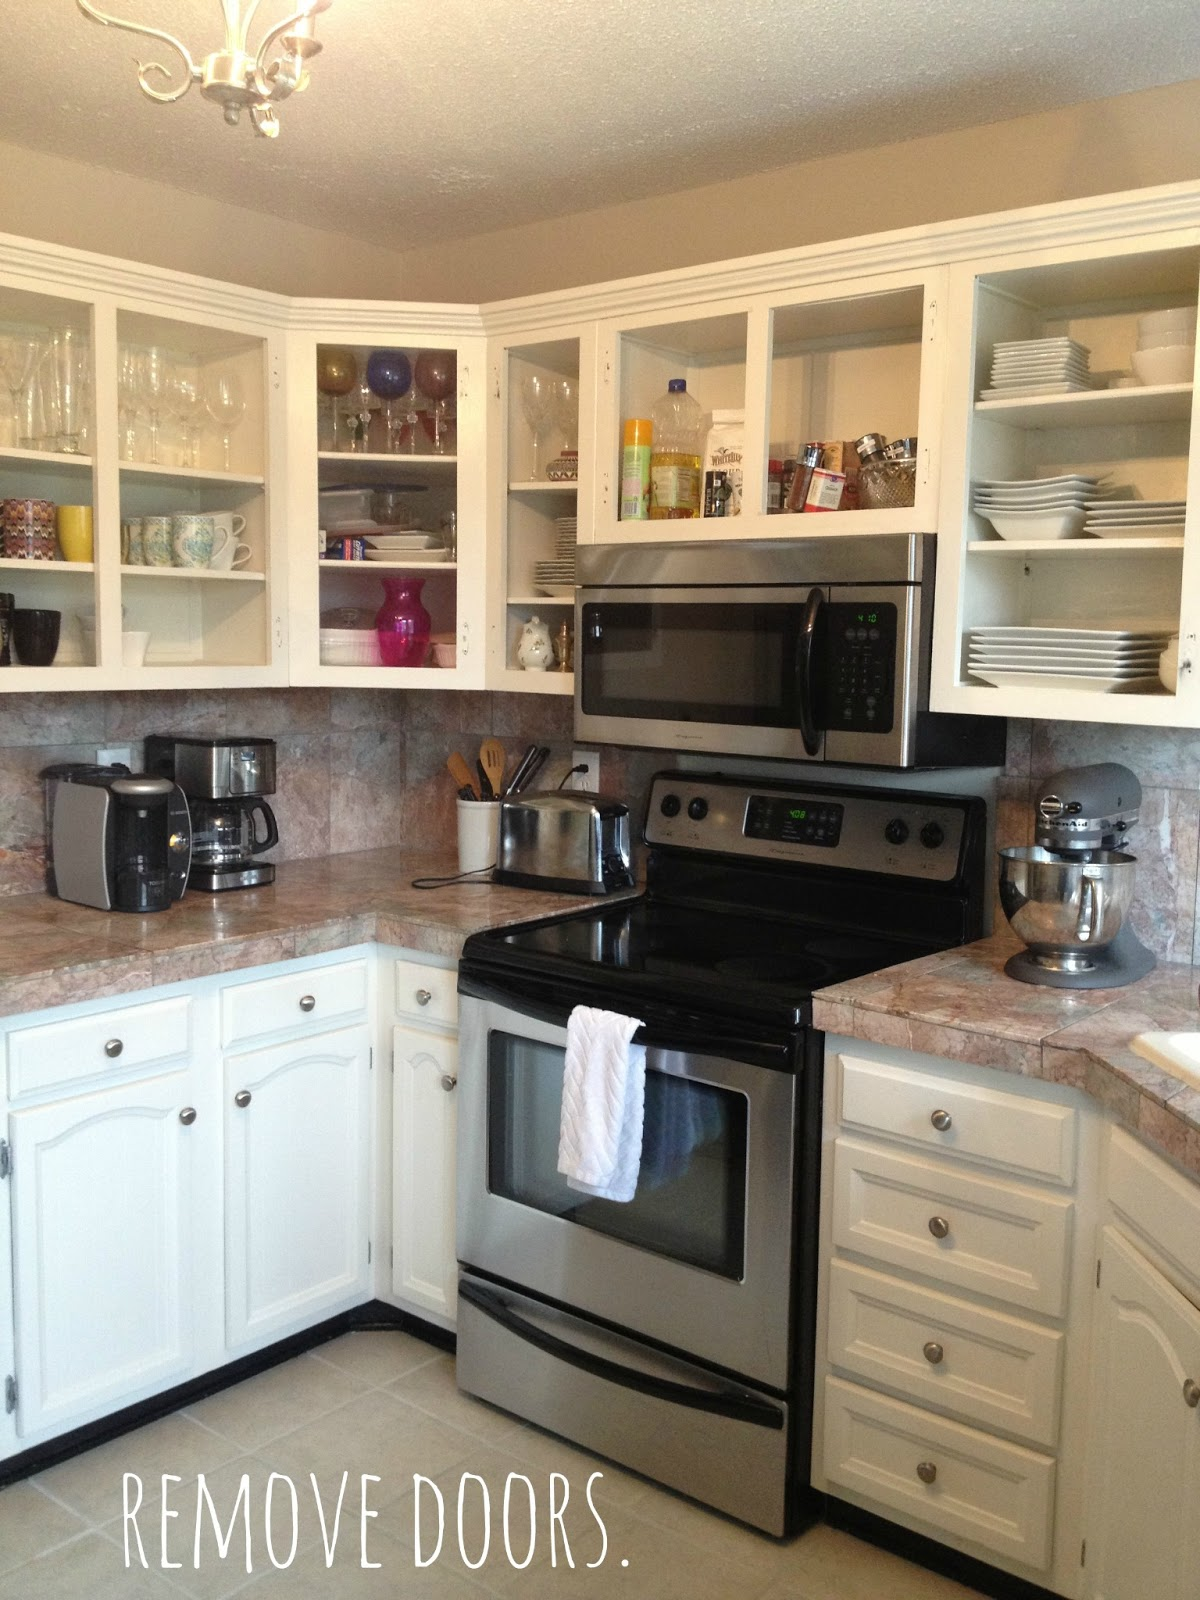 10 Easy Steps To Paint Kitchen Cabinets Kitchen Cabinet Doors Livelovediy